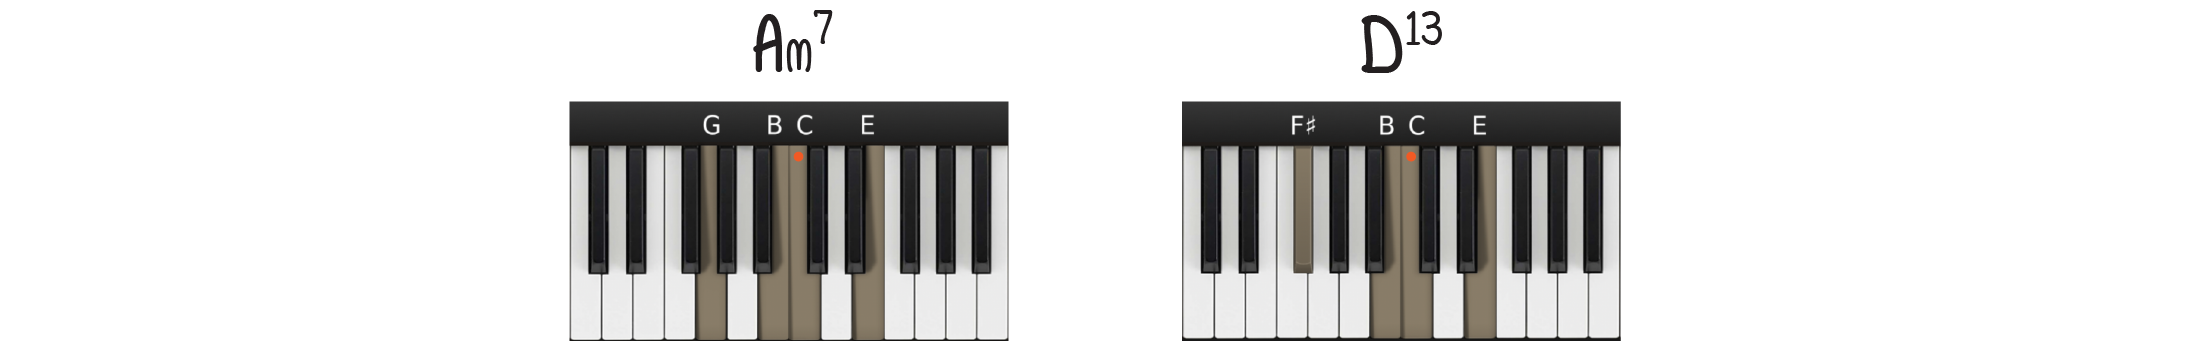 Am7 to D13 jazz and blues piano rootless voicings